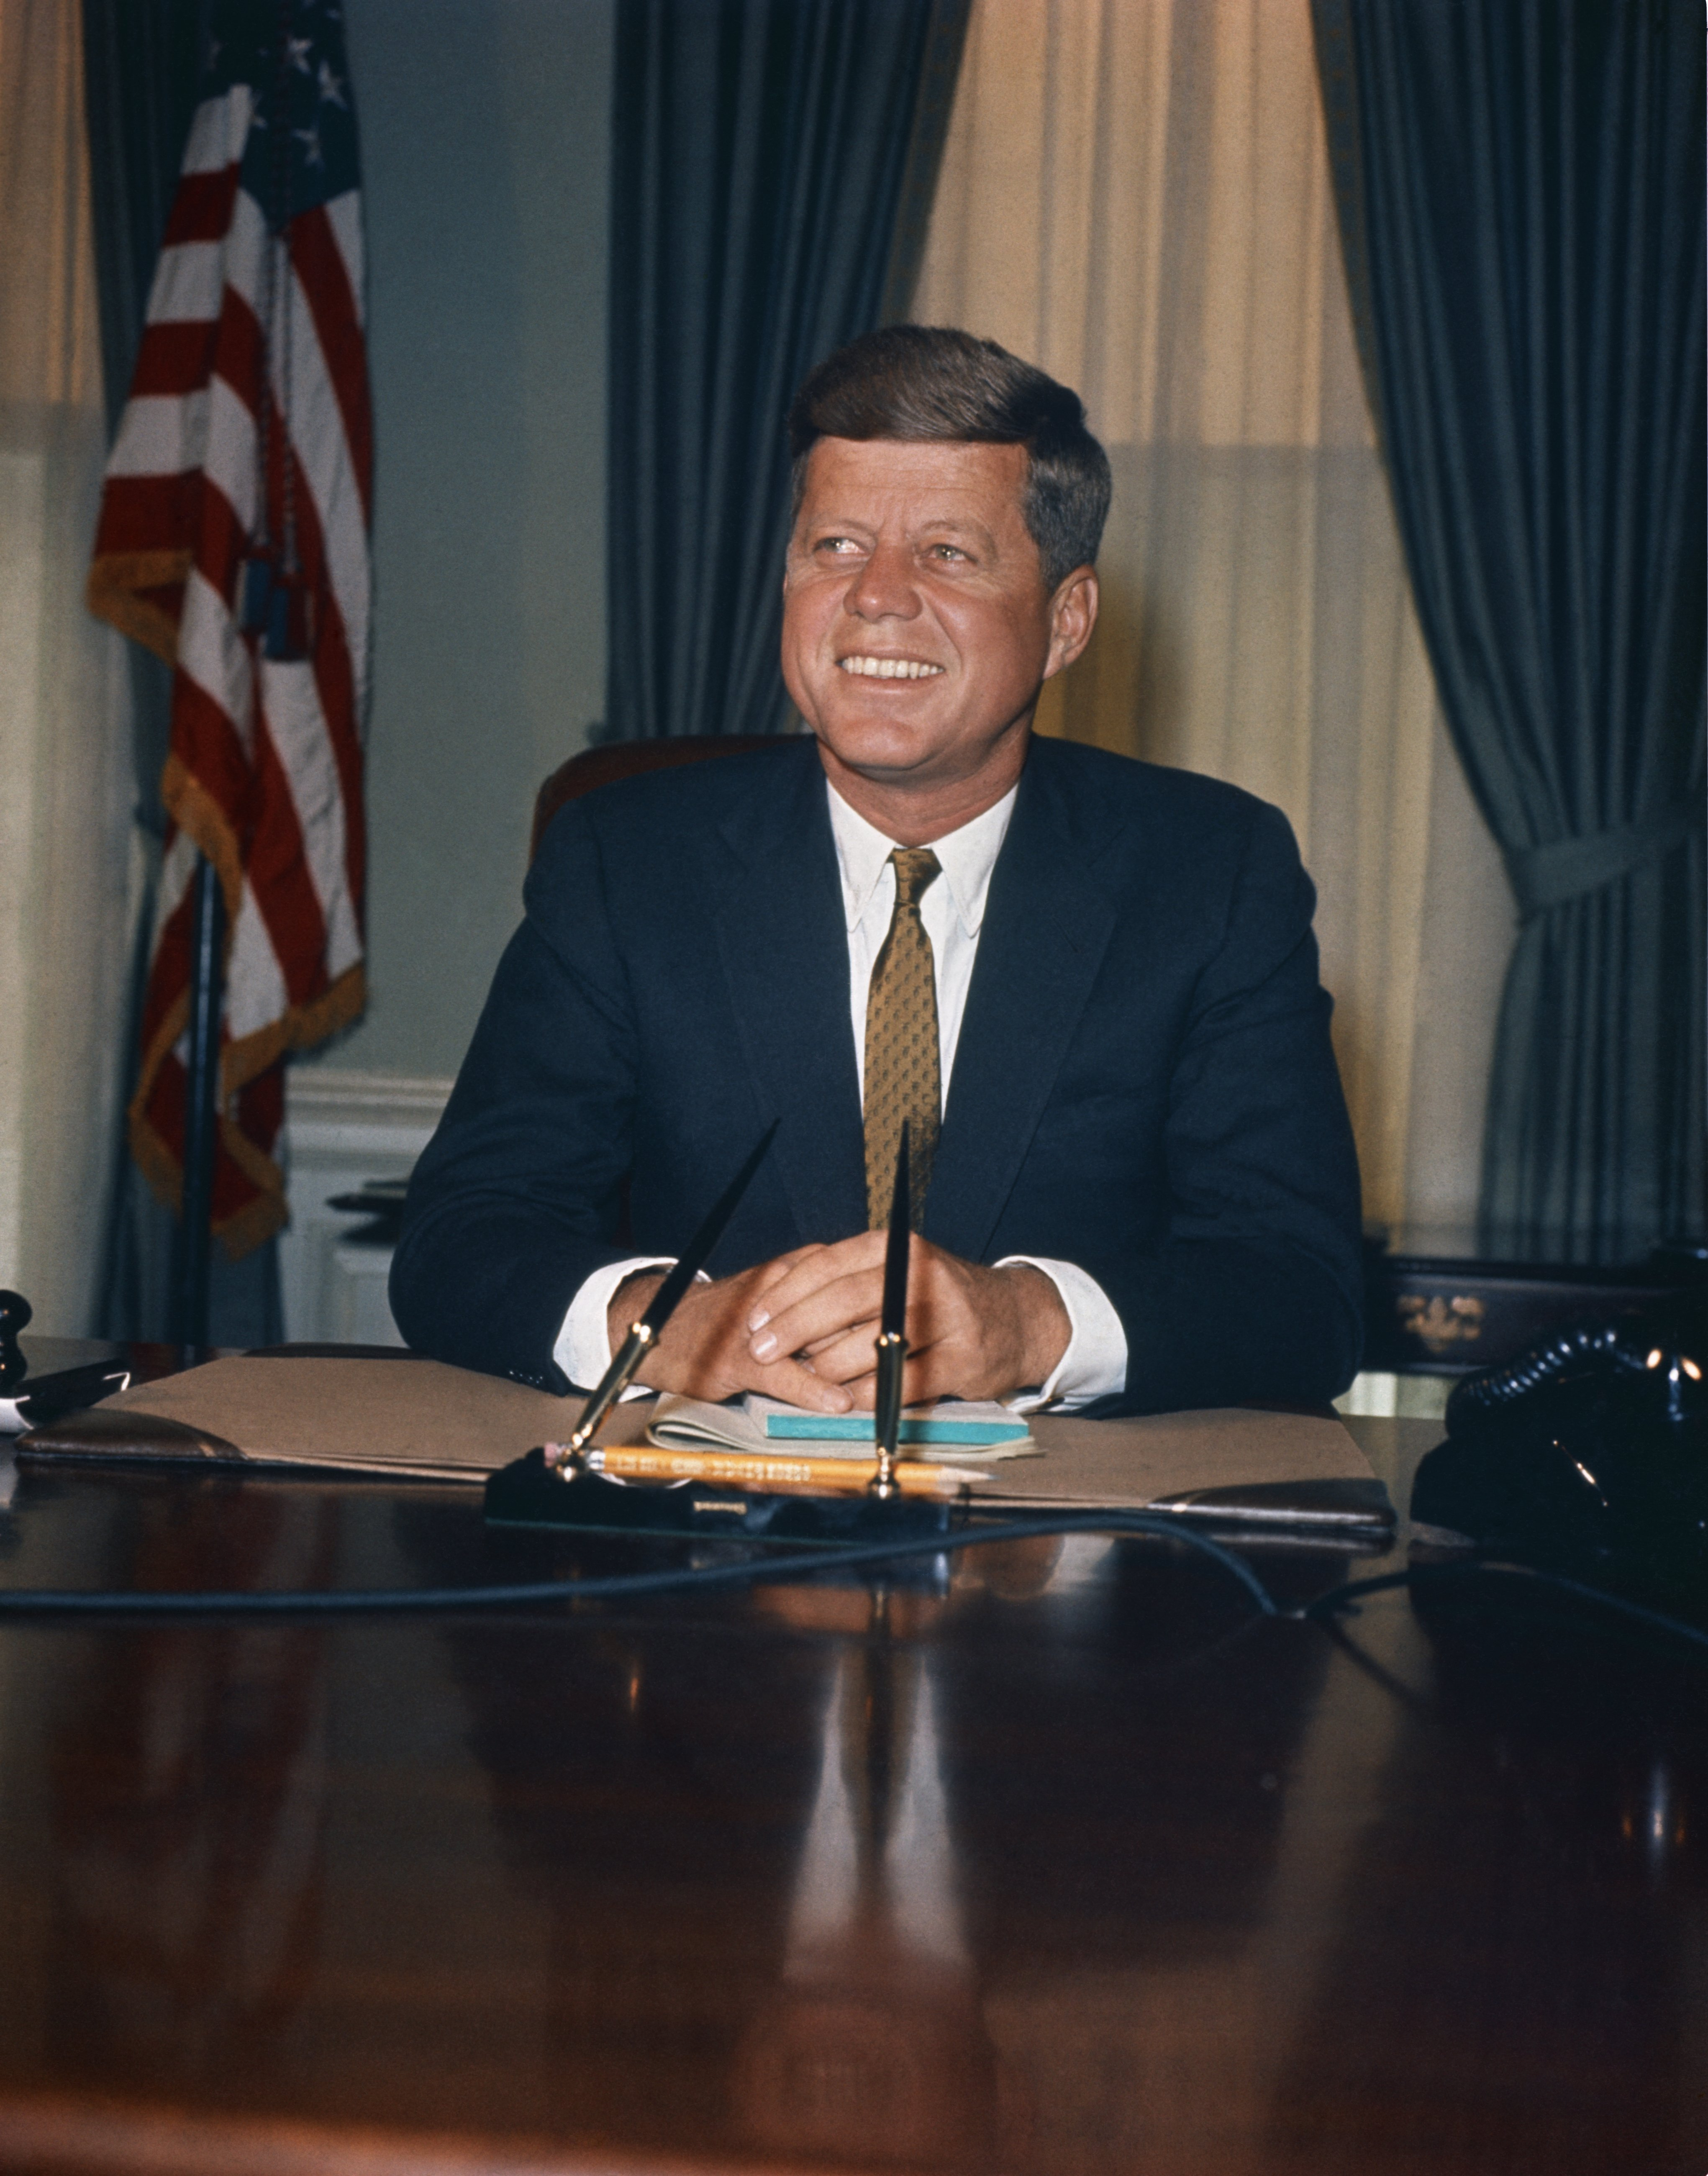 John F. Kennedy pictured at his desk in Oval Office in The White House. | Photo: Getty Images